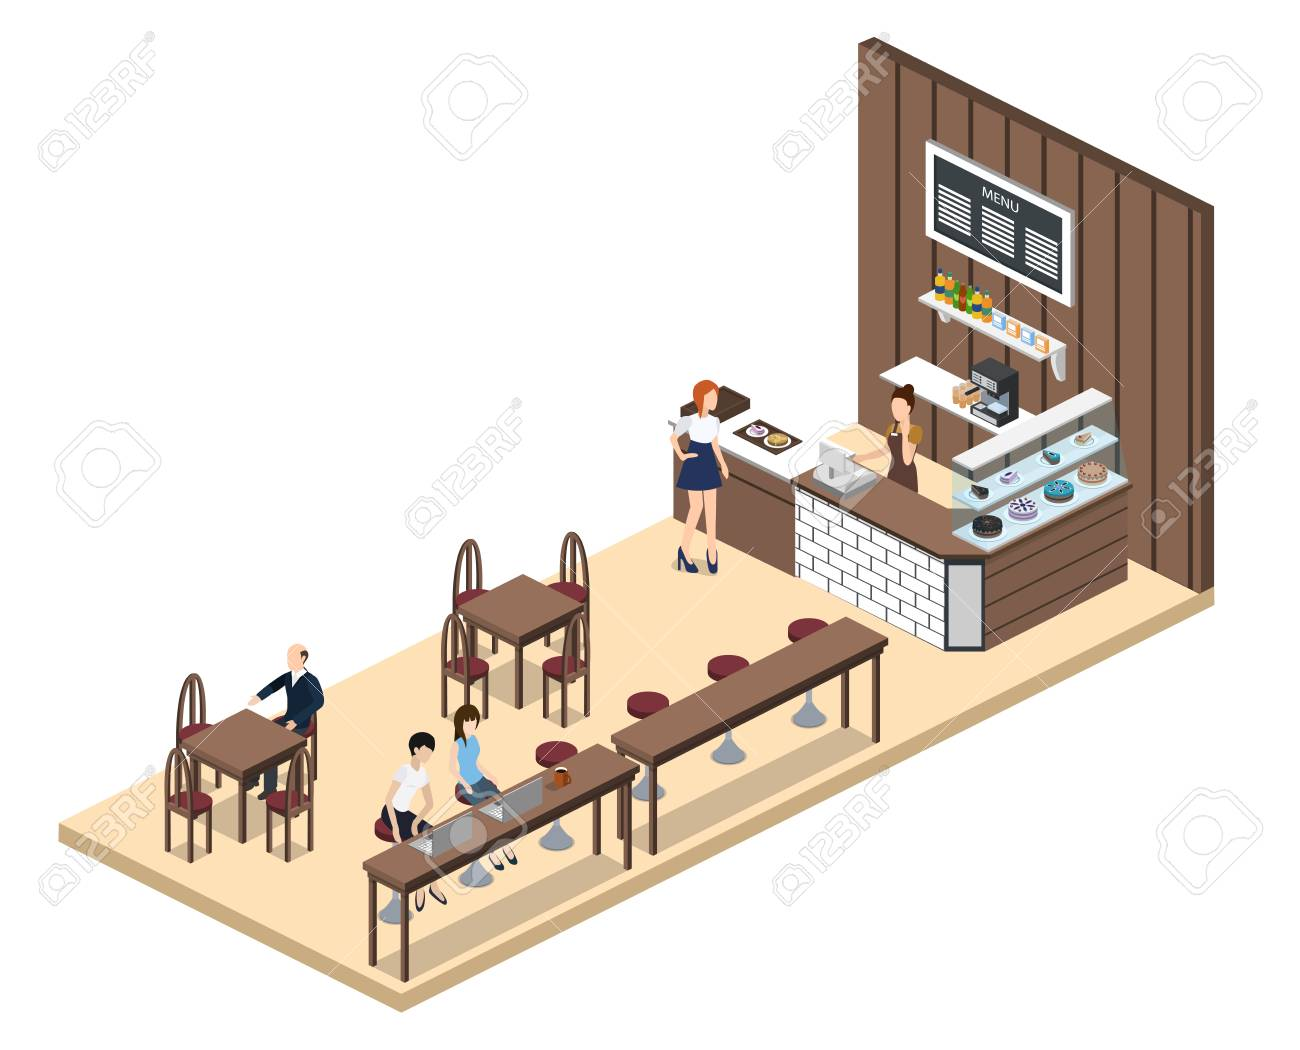 Isometric 3d Vector Illustration Design Interior Coffee Shop Royalty Free Cliparts Vectors And Stock Illustration Image 91167956